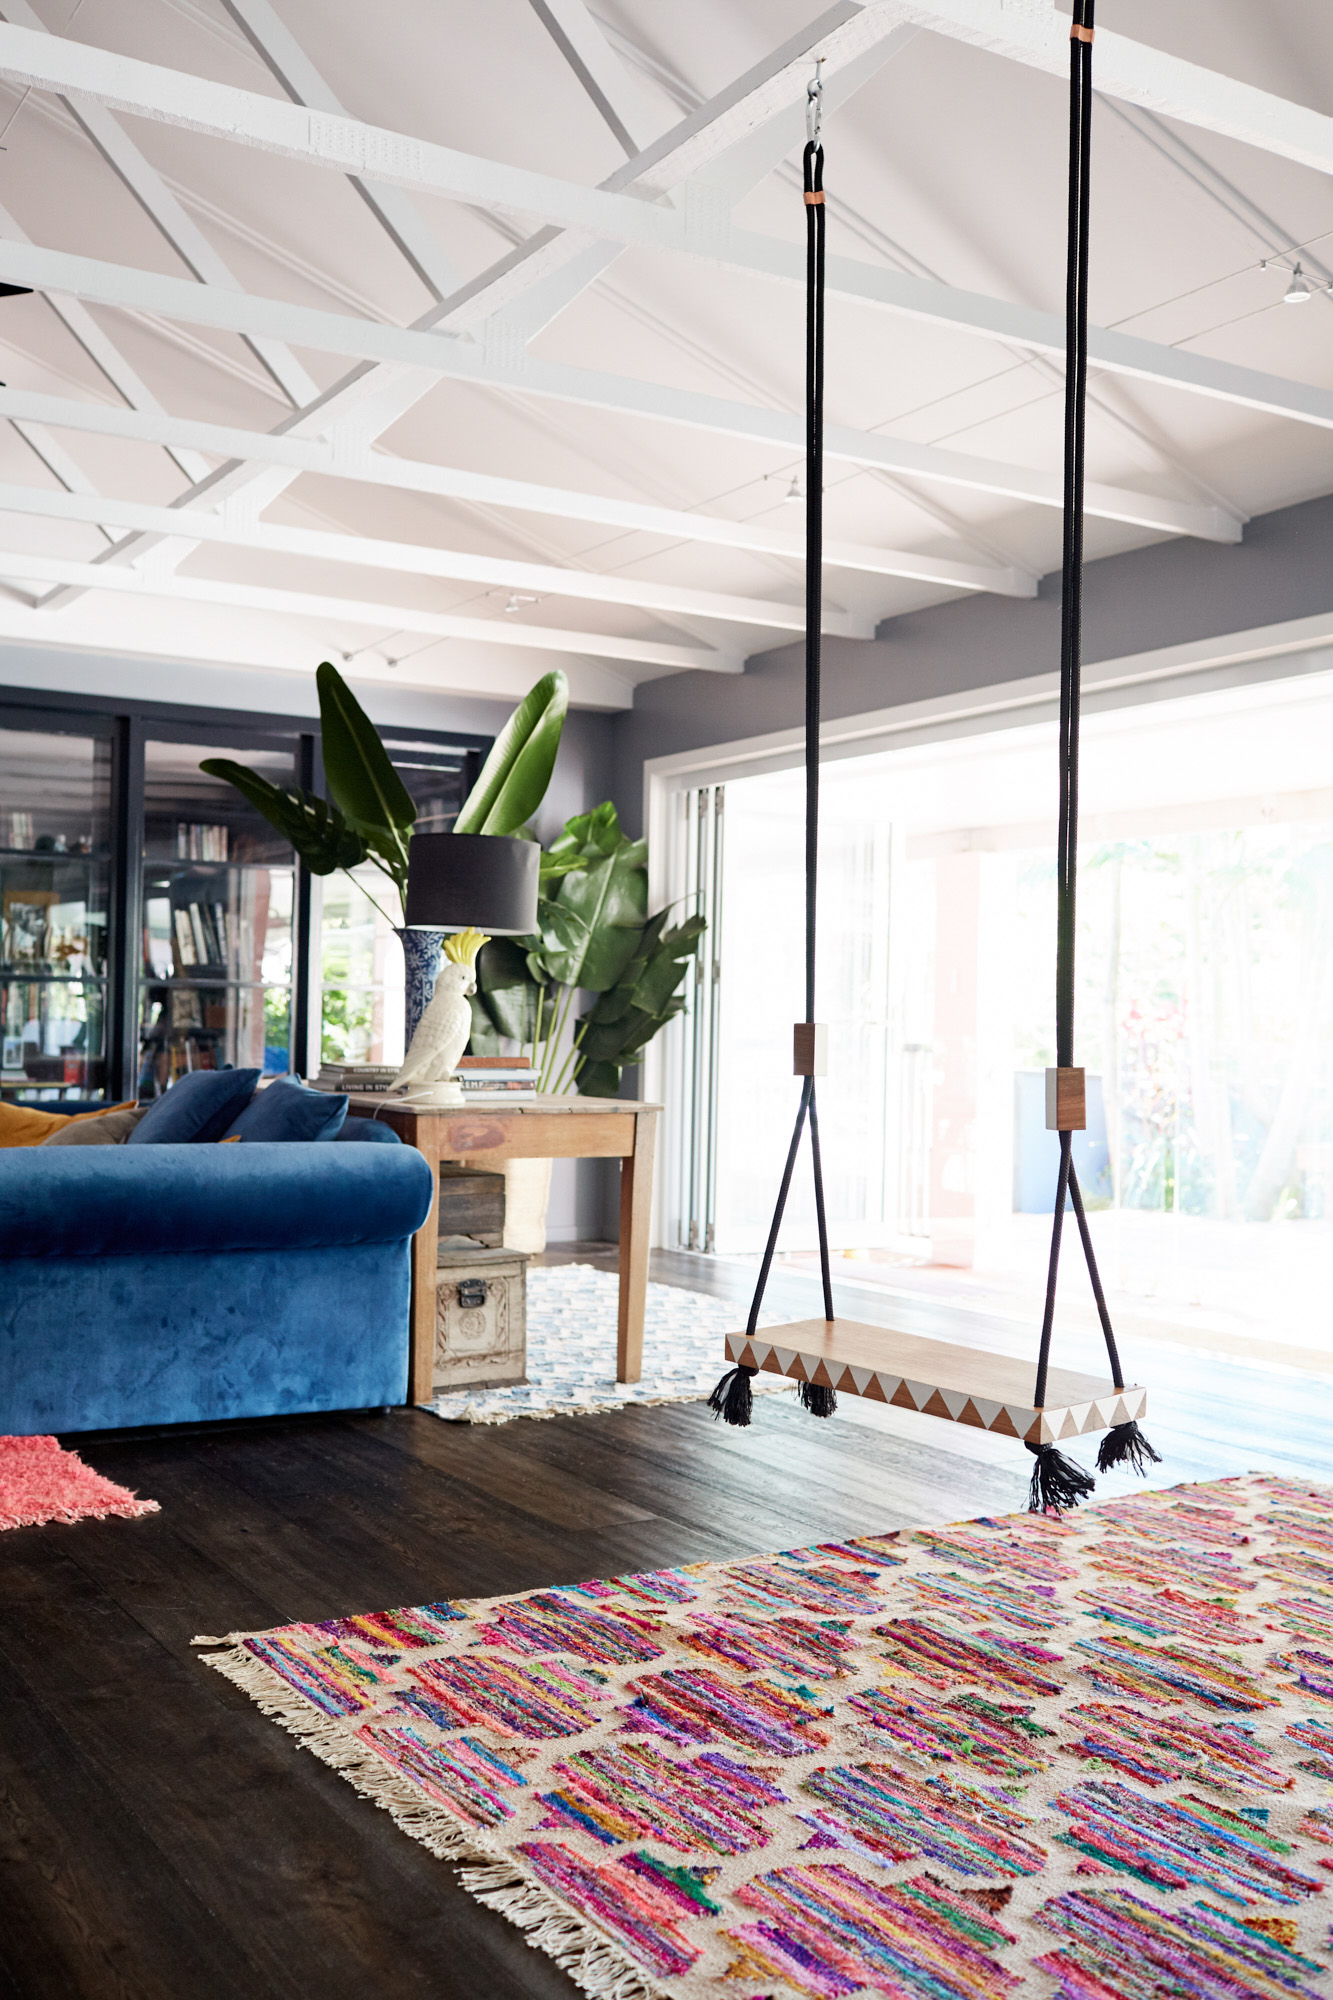 Beautiful byron bay abode designed by mother daughter duo for Quirky home interiors